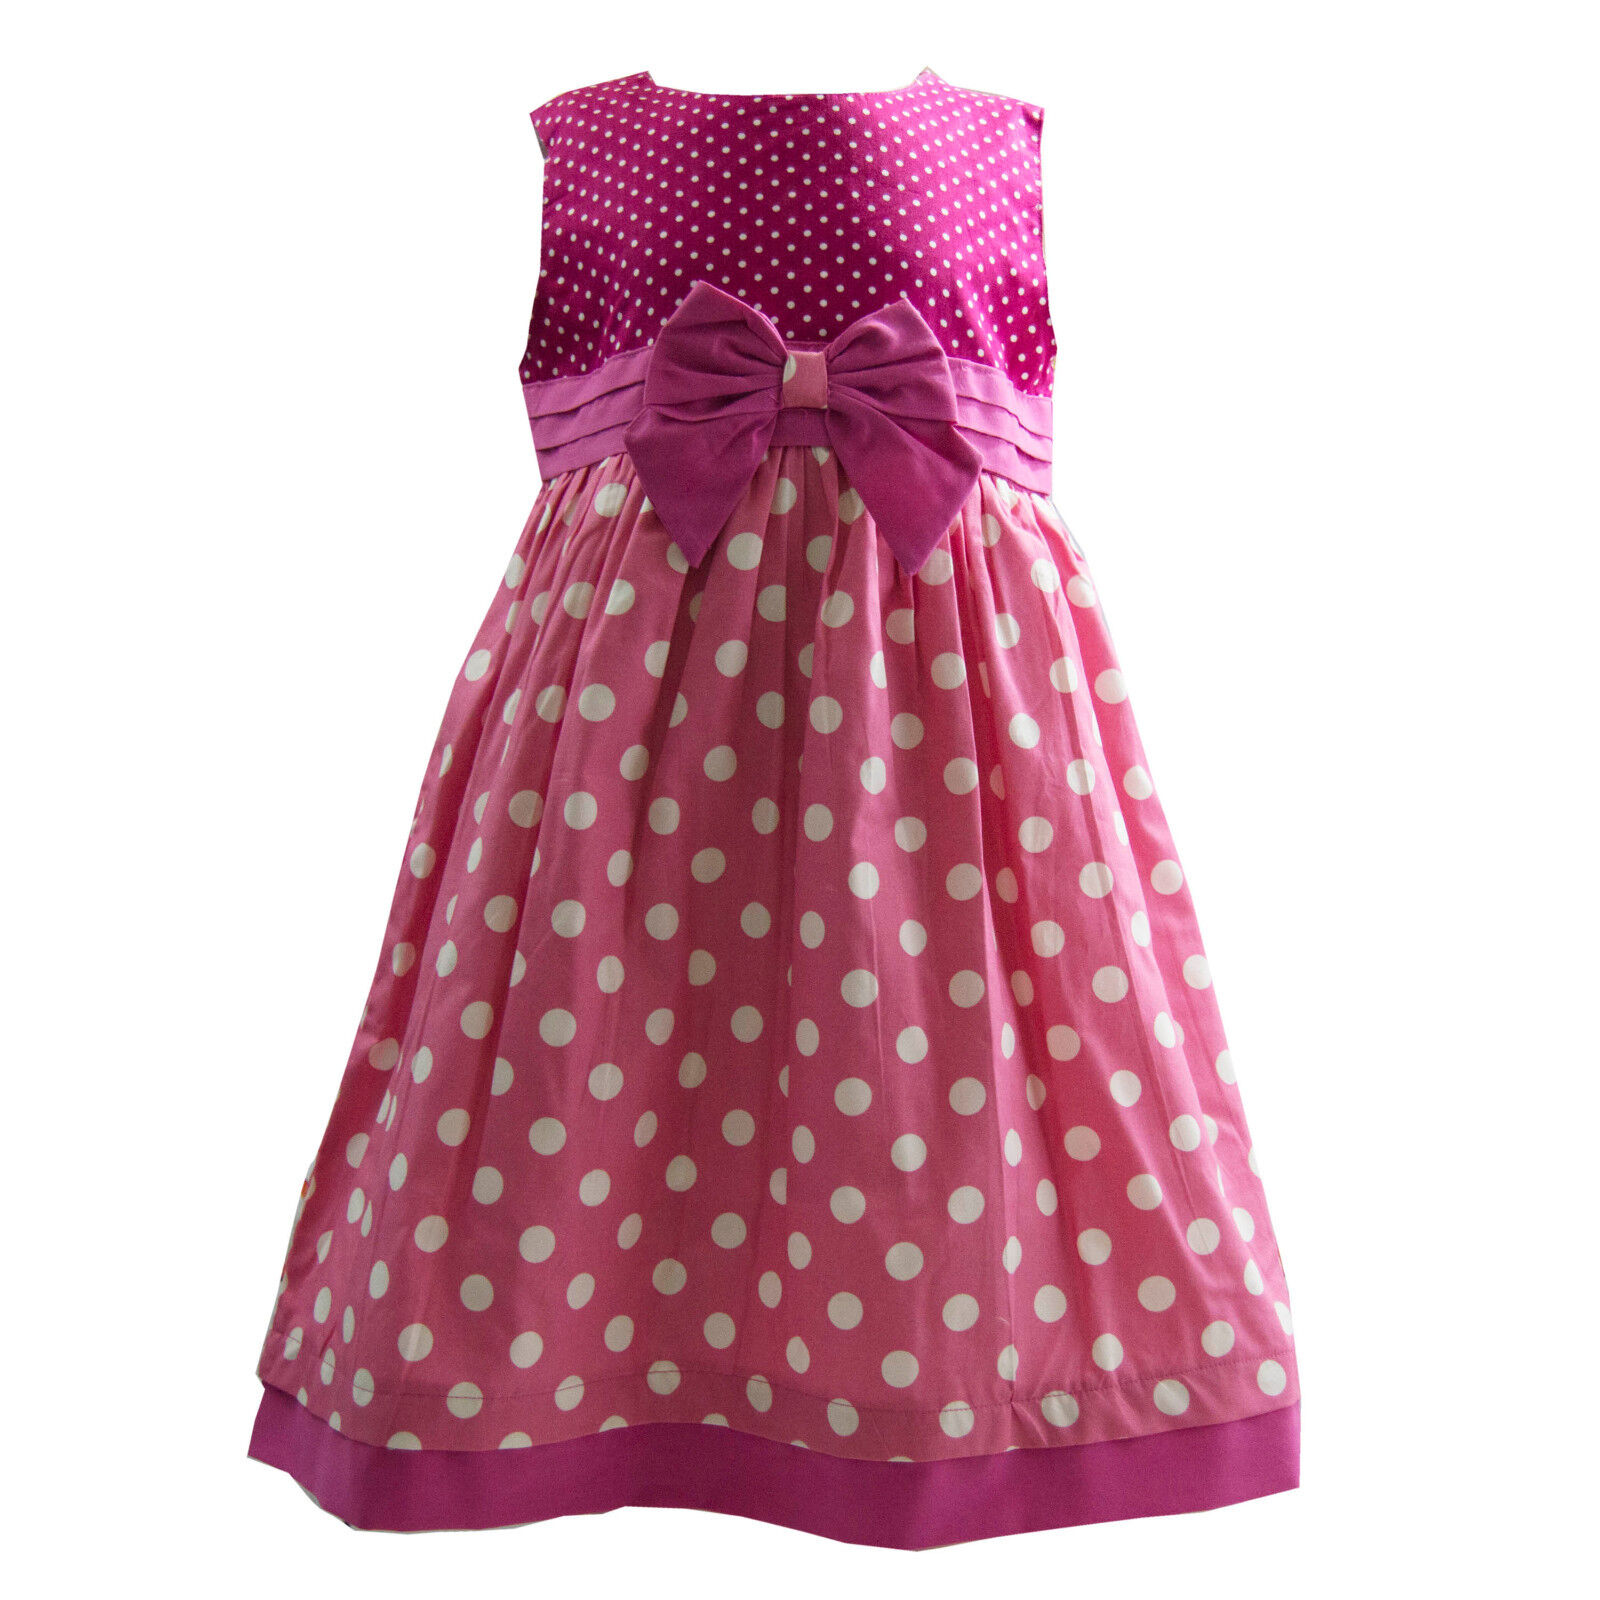 e24c1dd228a92 Details about New Laura Ashley Kids Baby Girls Holiday Wedding Party Flower  Dress Size 4 5 6